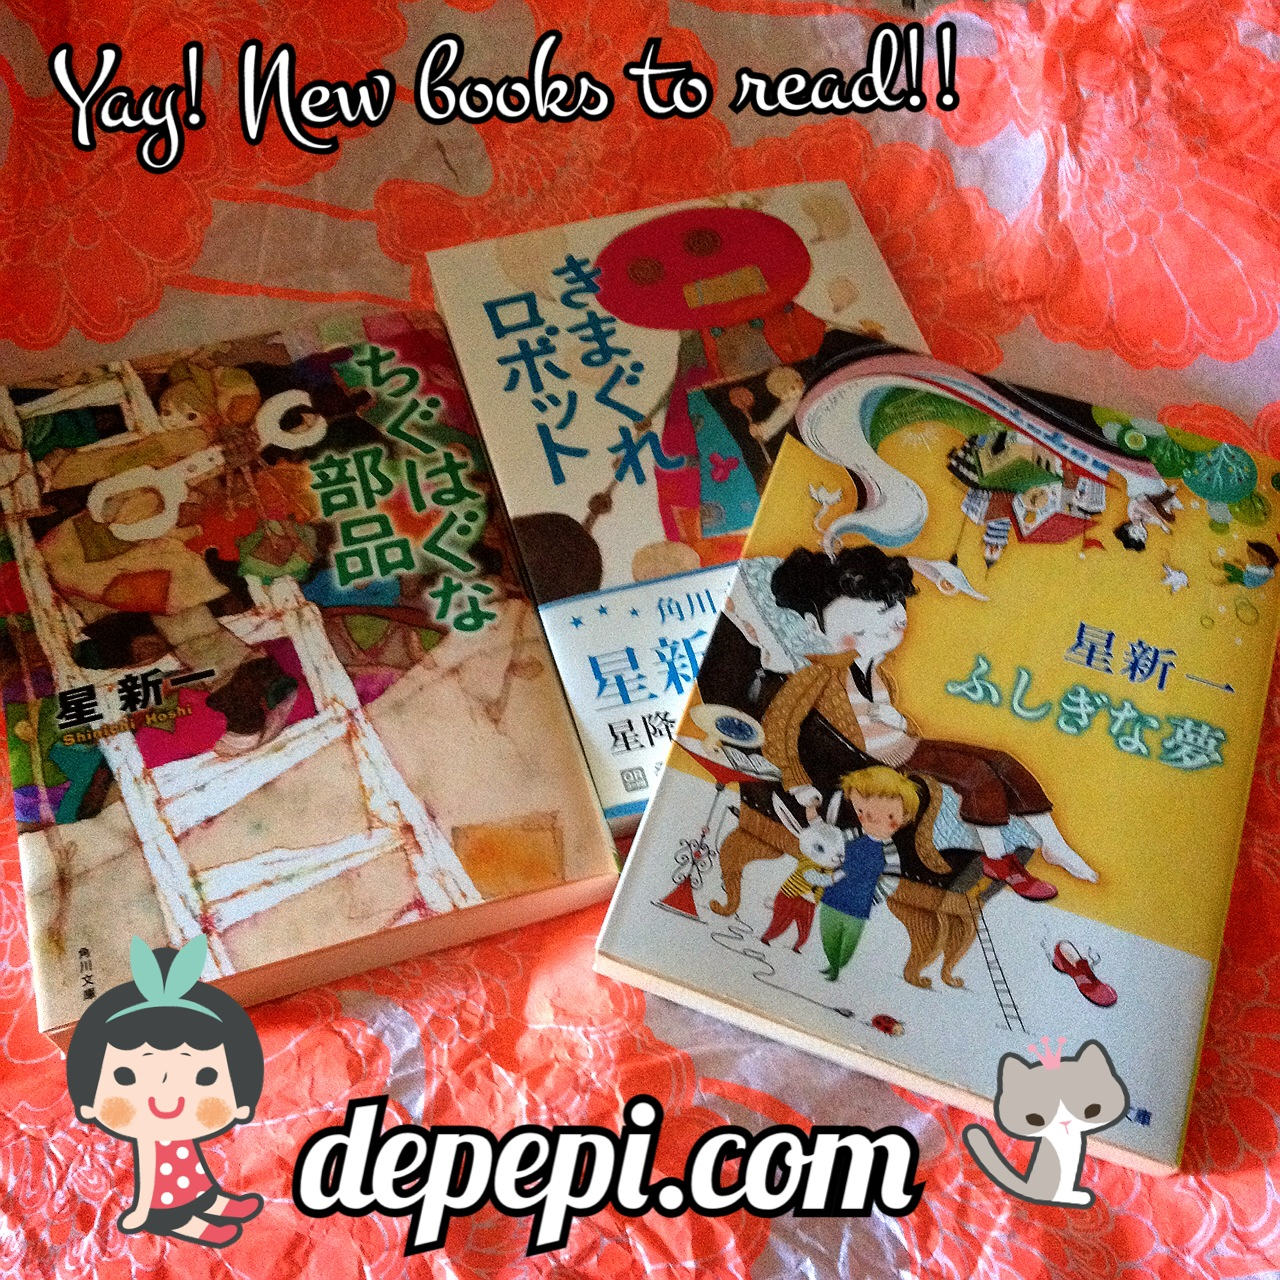 depepi, depepi.com, books, kawaii, japan, japanese, cute, geek, nerd